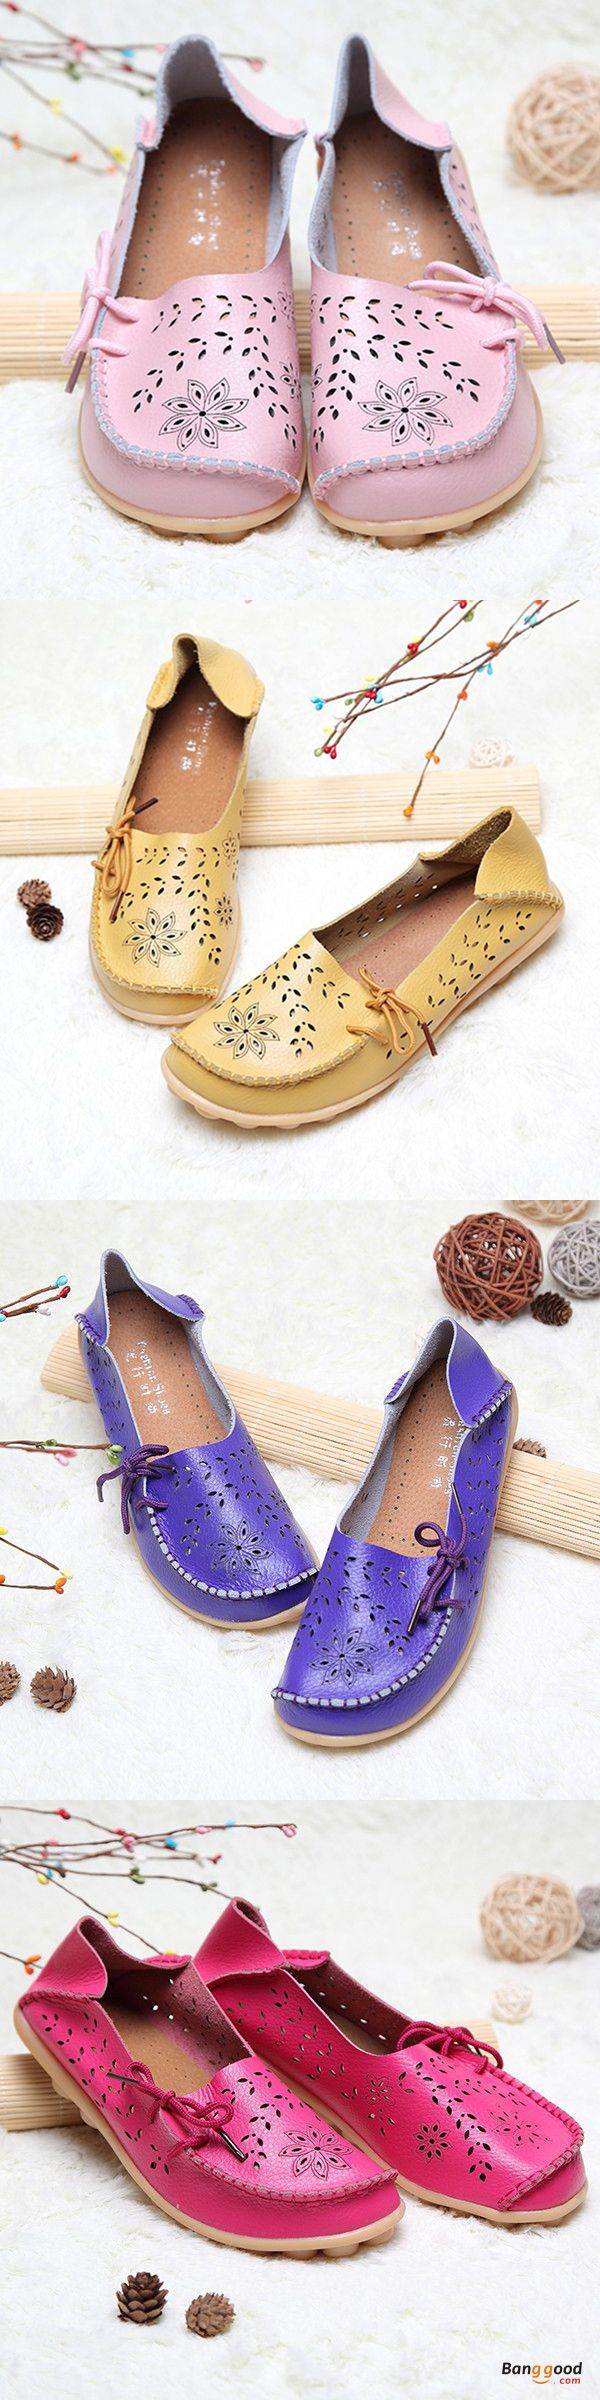 US$22.47 + Free shipping. Size(US): 5~13. Flat Shoes, Shoes for Women, Outdoor Athletic Shoes, Womens Fashion, Womens Shoes, Summer Outfits. Color: Khaki, Purple, Pink, Army Blue, Yellow, Light Yellow, Orange, Gold, Silver, Rose. Upper Material: Cow Split Leather.